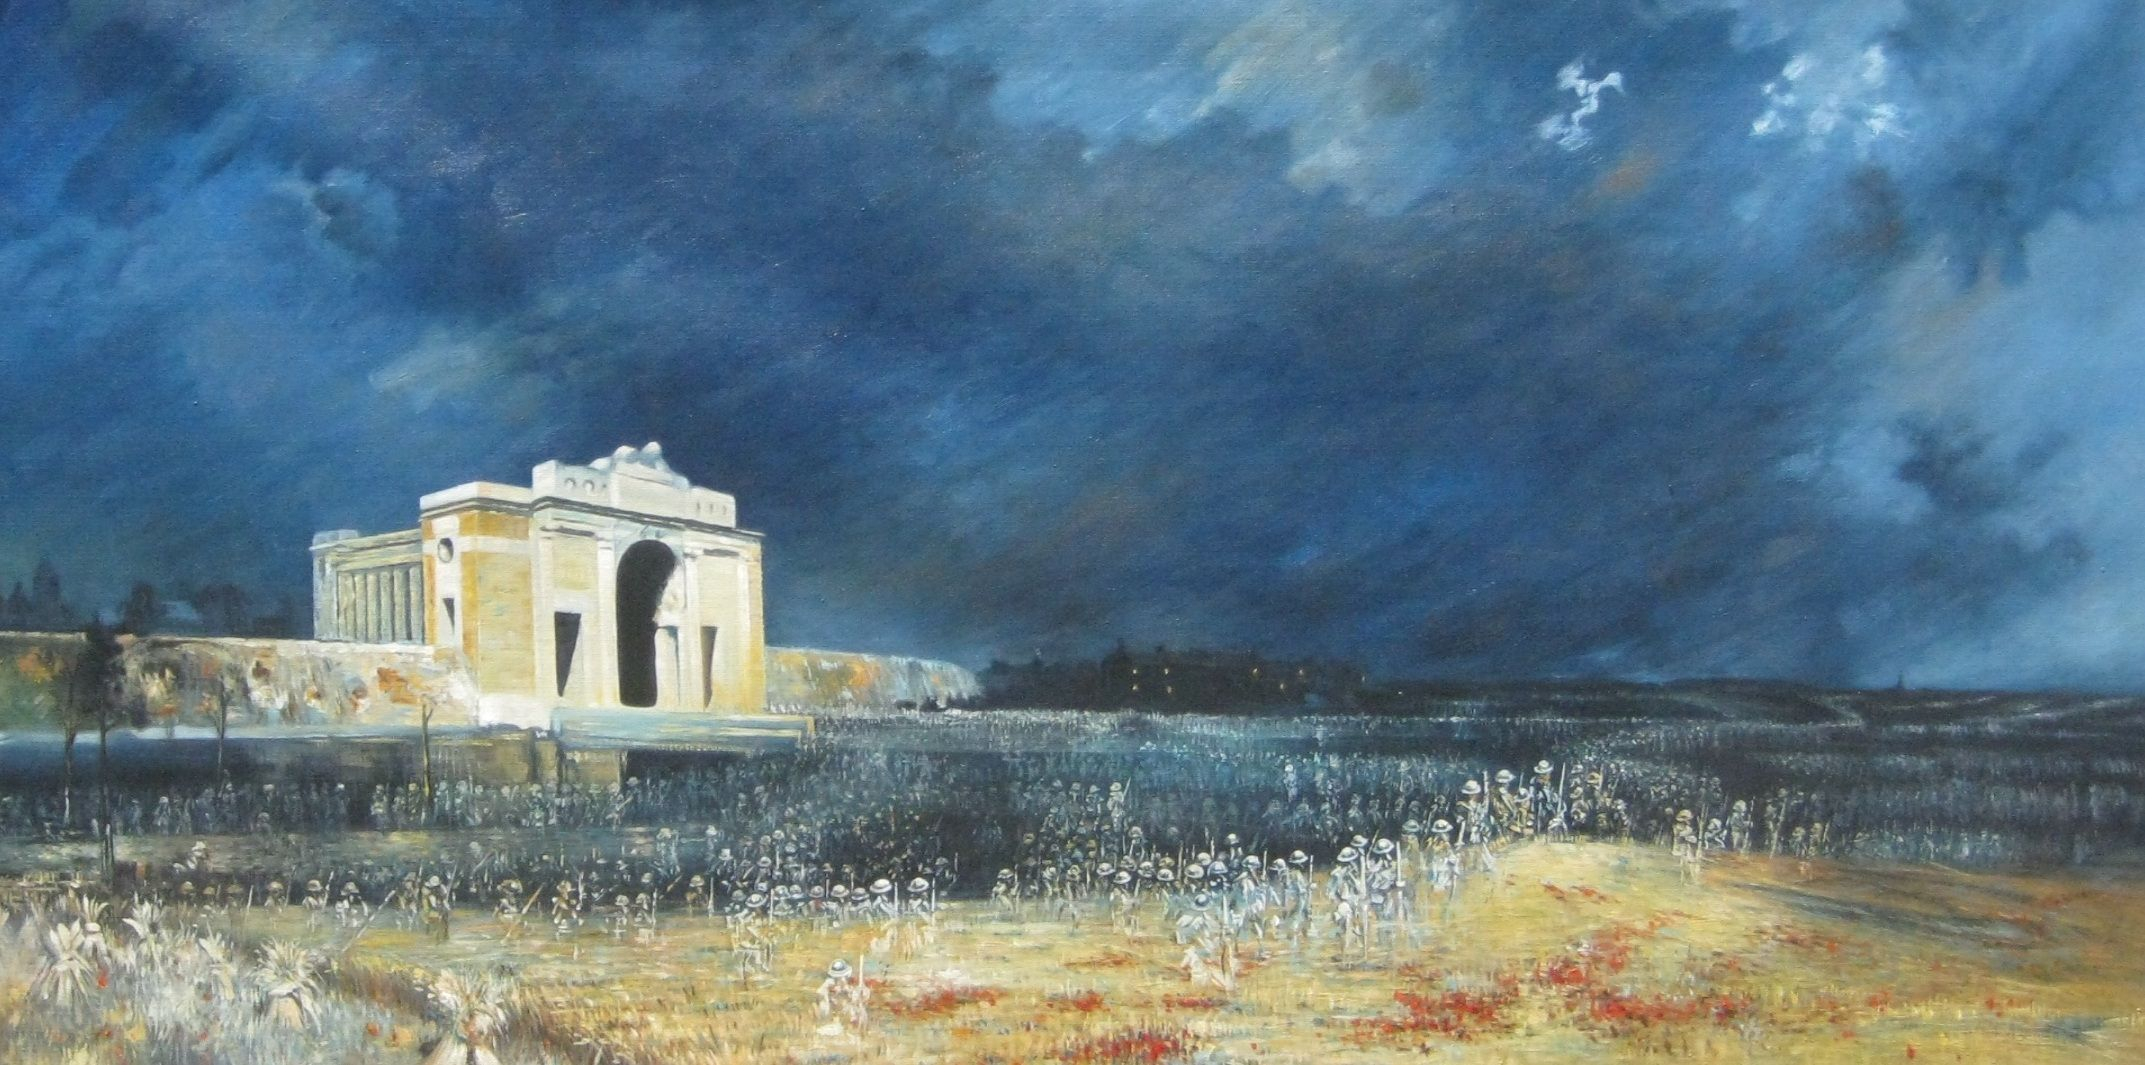 """Will Longstaff has skilfully portrayed 'The Ghosts of Menin Gate'; but, to those who have eyes to see, every Australian highway is haunted by the gallant ghosts of the pioneers. In the centre of each crowded street there stands an invisible altar on which has been offered a hecatomb of noble victims, a holocaust of sacrificial blood. The Anzac story is the crowning incident in that affecting pageant."" - F W Boreham"